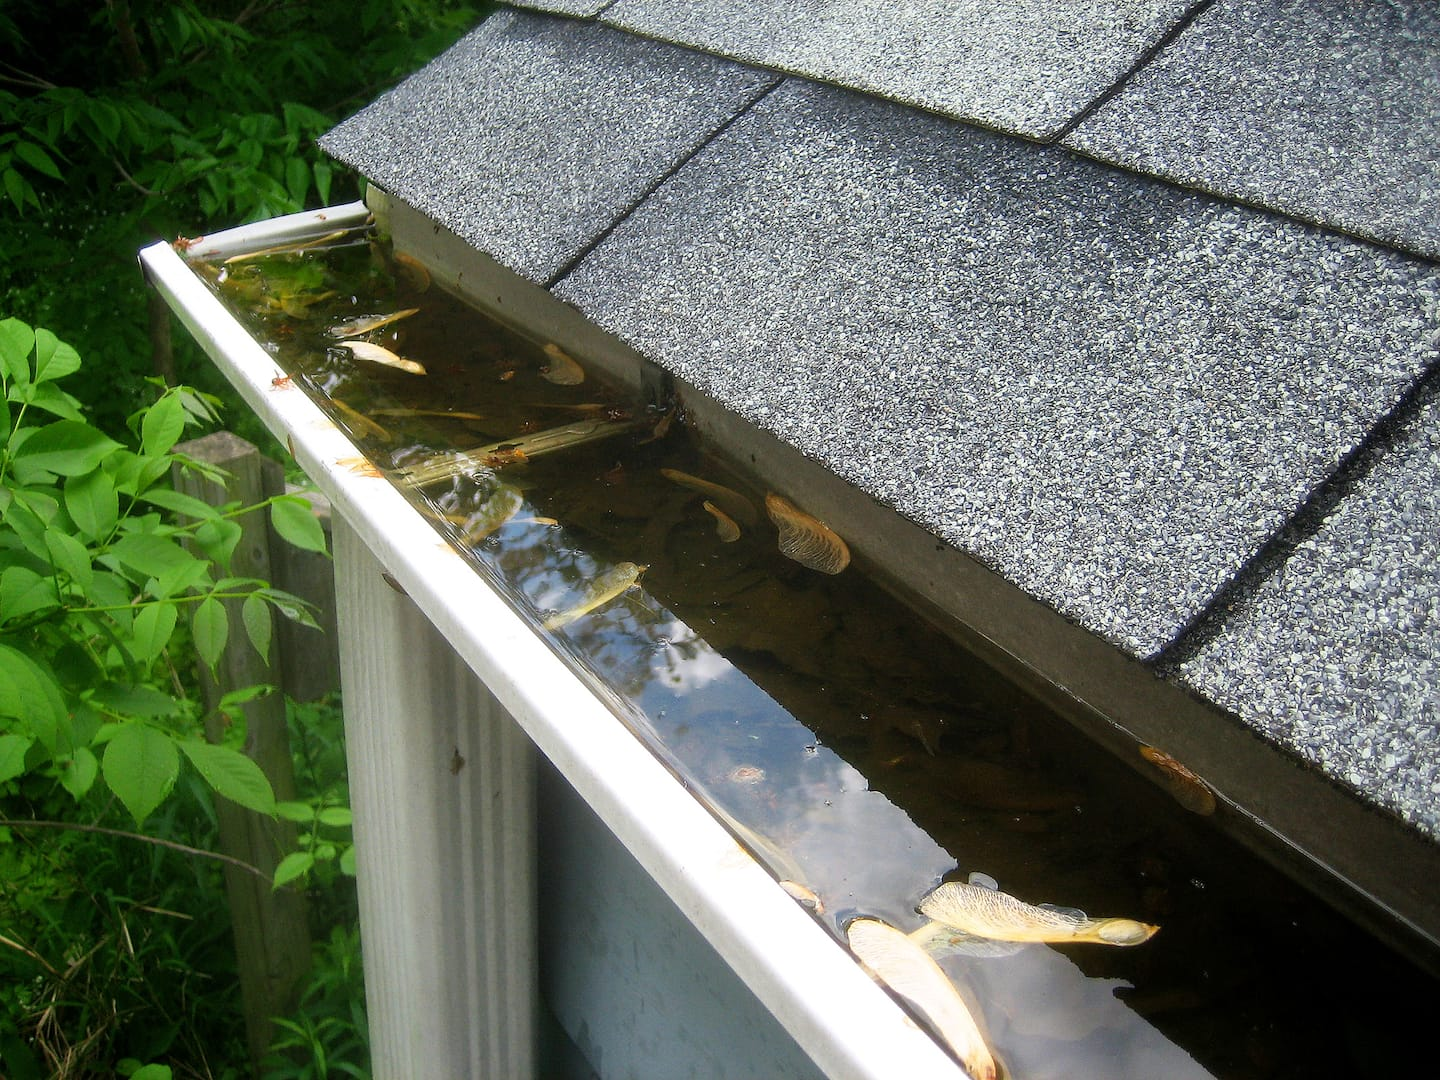 How much to charge for gutter installation - Clogged Rain Gutter Photo By Photo Courtesy Of Eric Schmuttenmaer